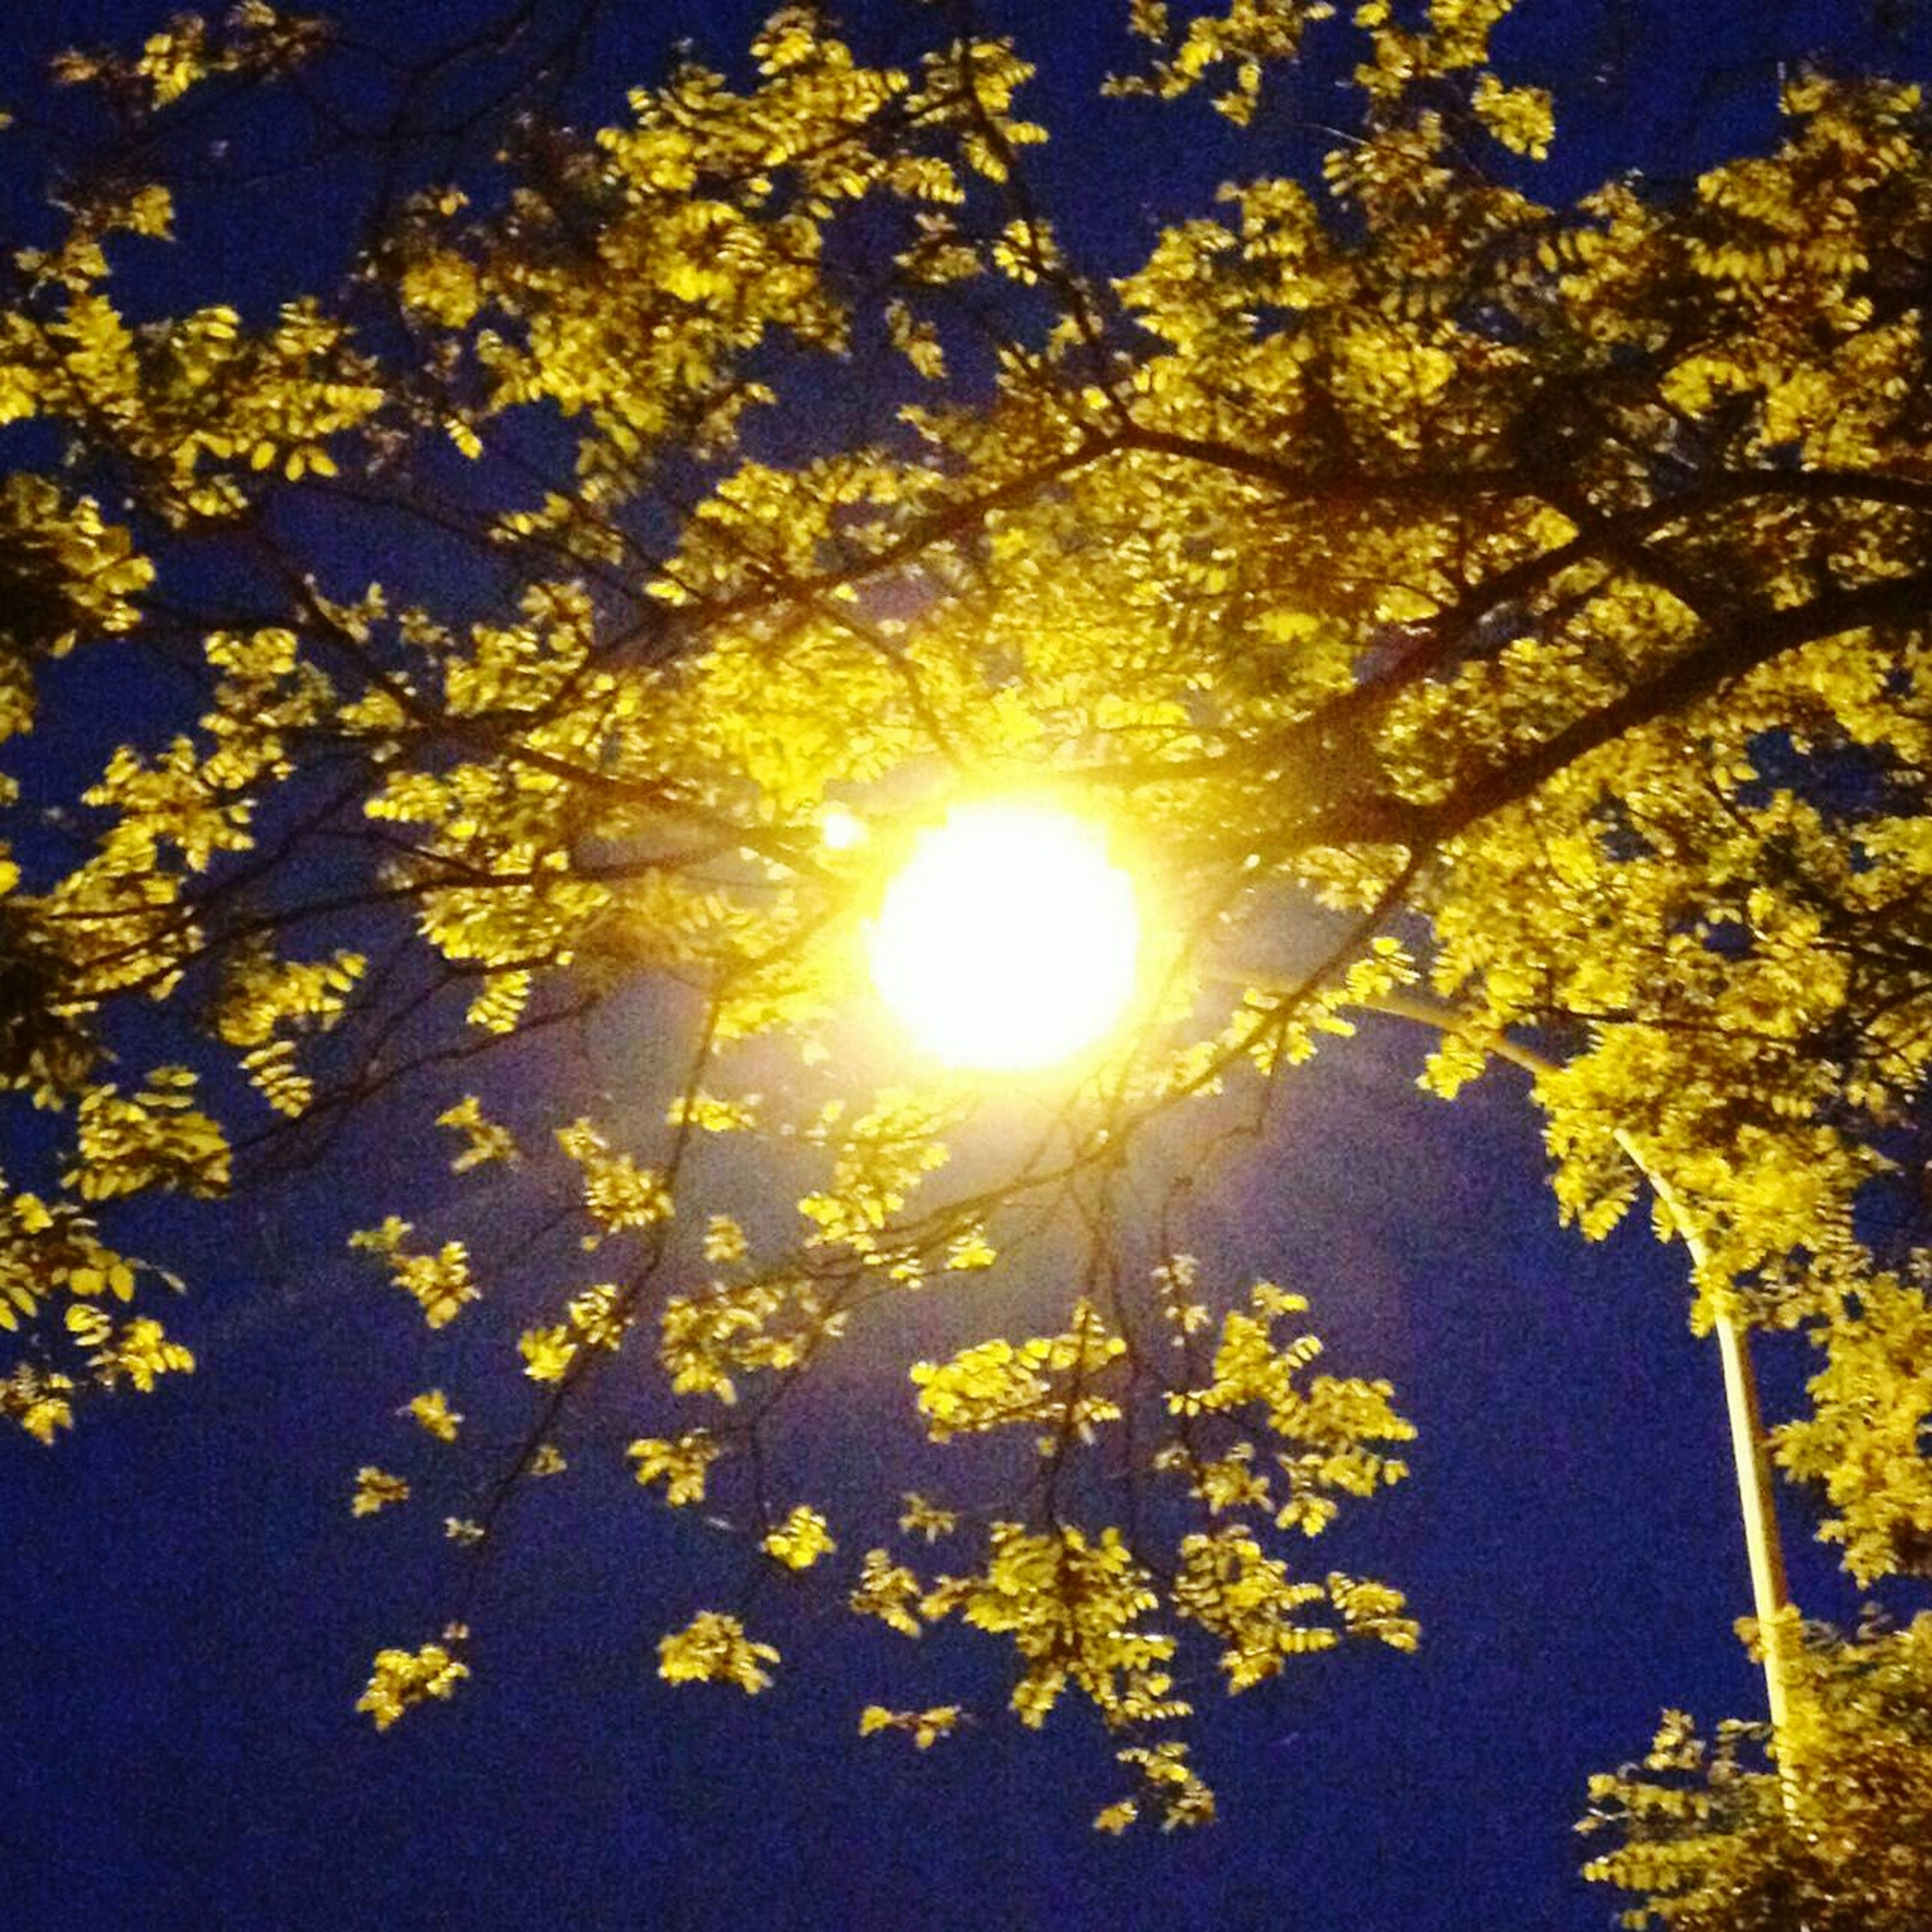 tree, branch, low angle view, sun, growth, beauty in nature, sunlight, nature, tranquility, sunbeam, yellow, sky, lens flare, leaf, clear sky, scenics, no people, outdoors, tranquil scene, day